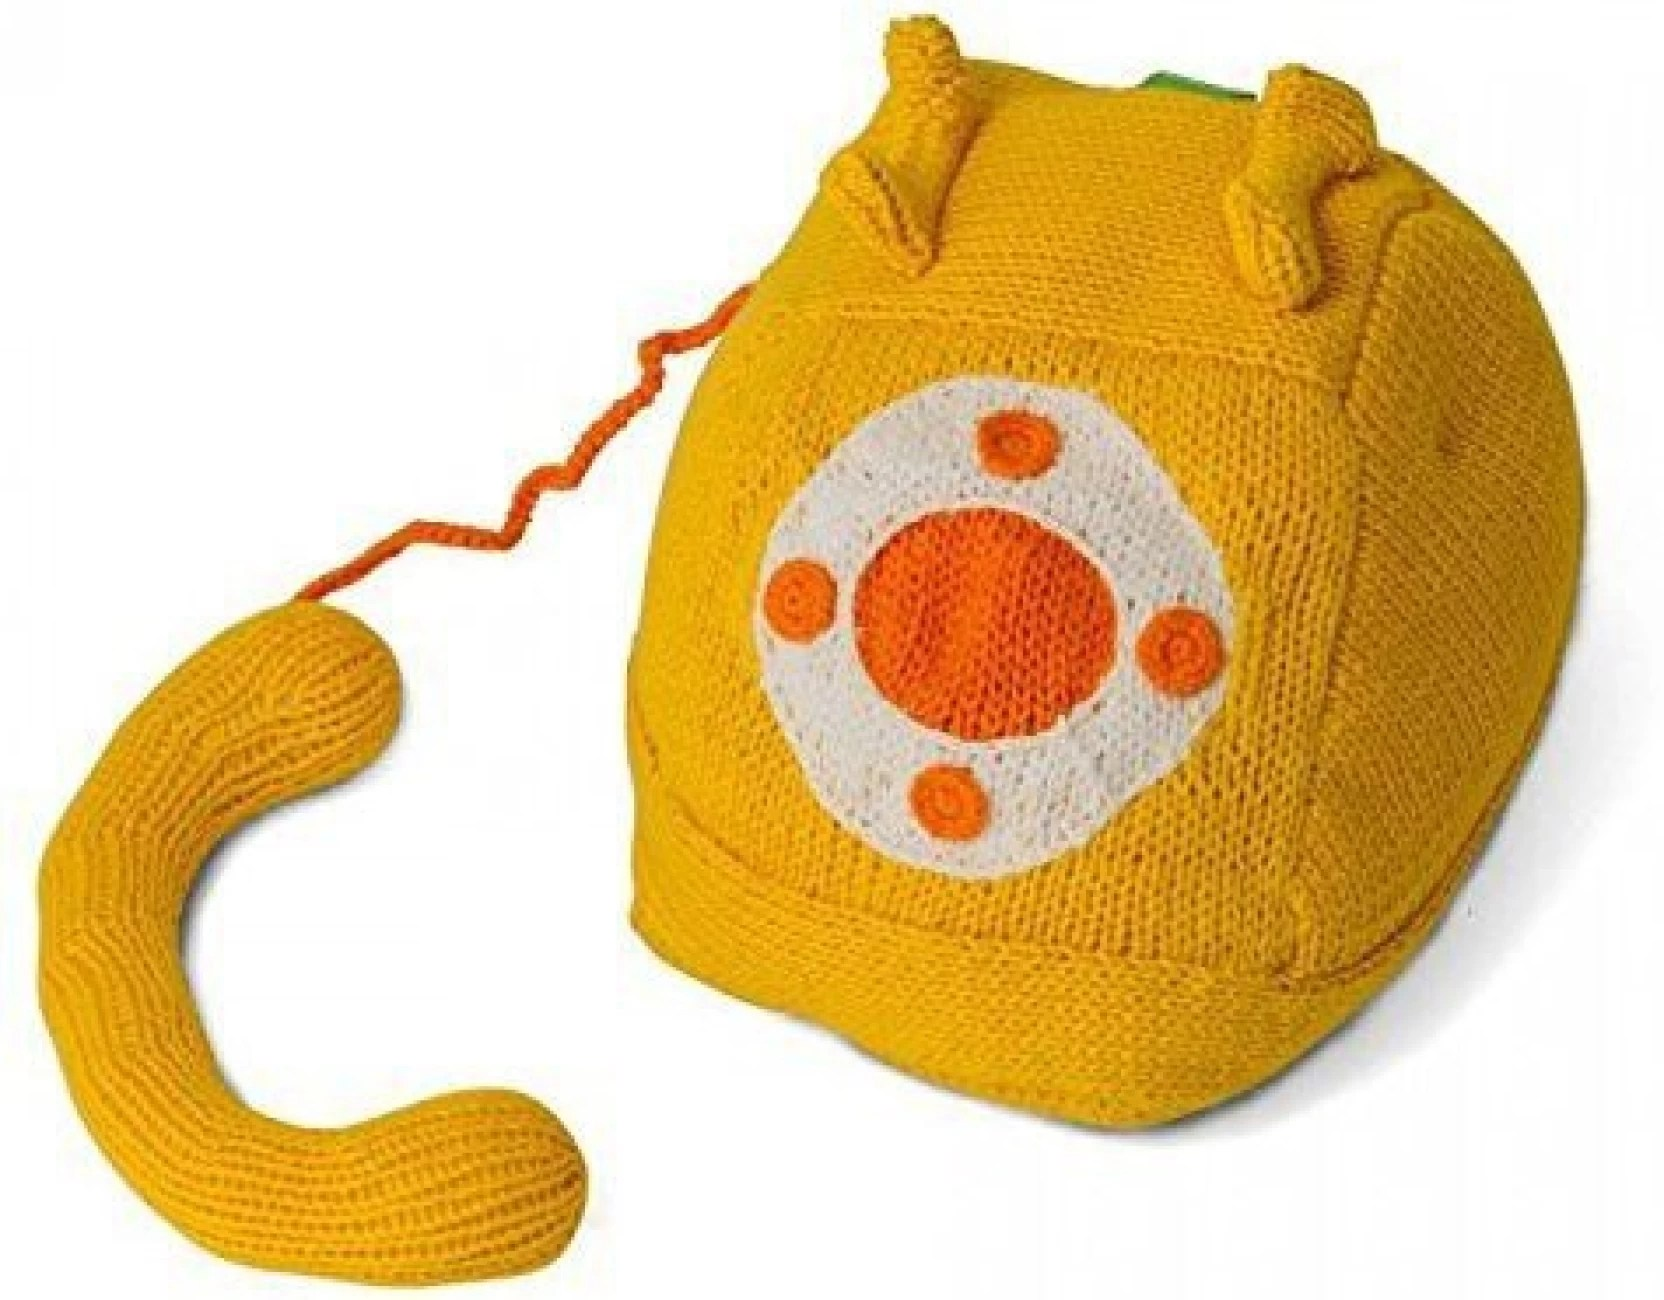 hight resolution of estella pil phone hand knit rotary phone plush toy 9 inch multicolor